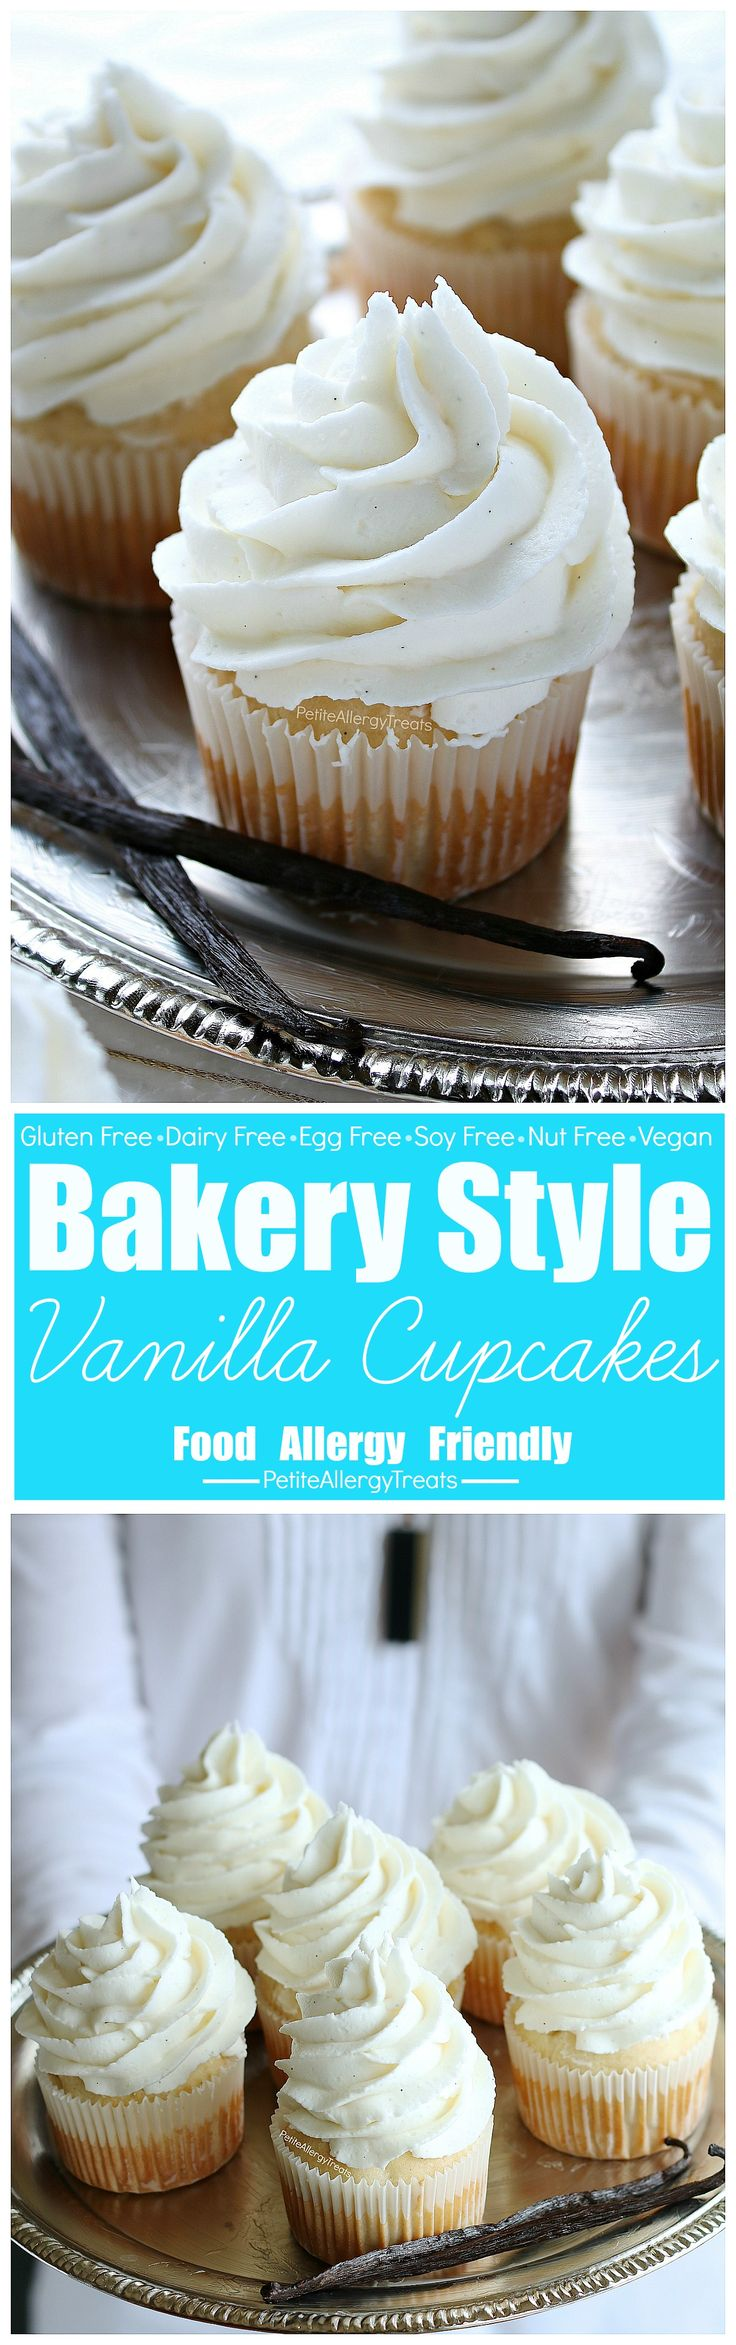 Bakery Style Gluten Free Vanilla Cupcakes recipe (vegan). Real vanilla bean. Dairy free frosting, egg free. Allergy Amulet detection device.